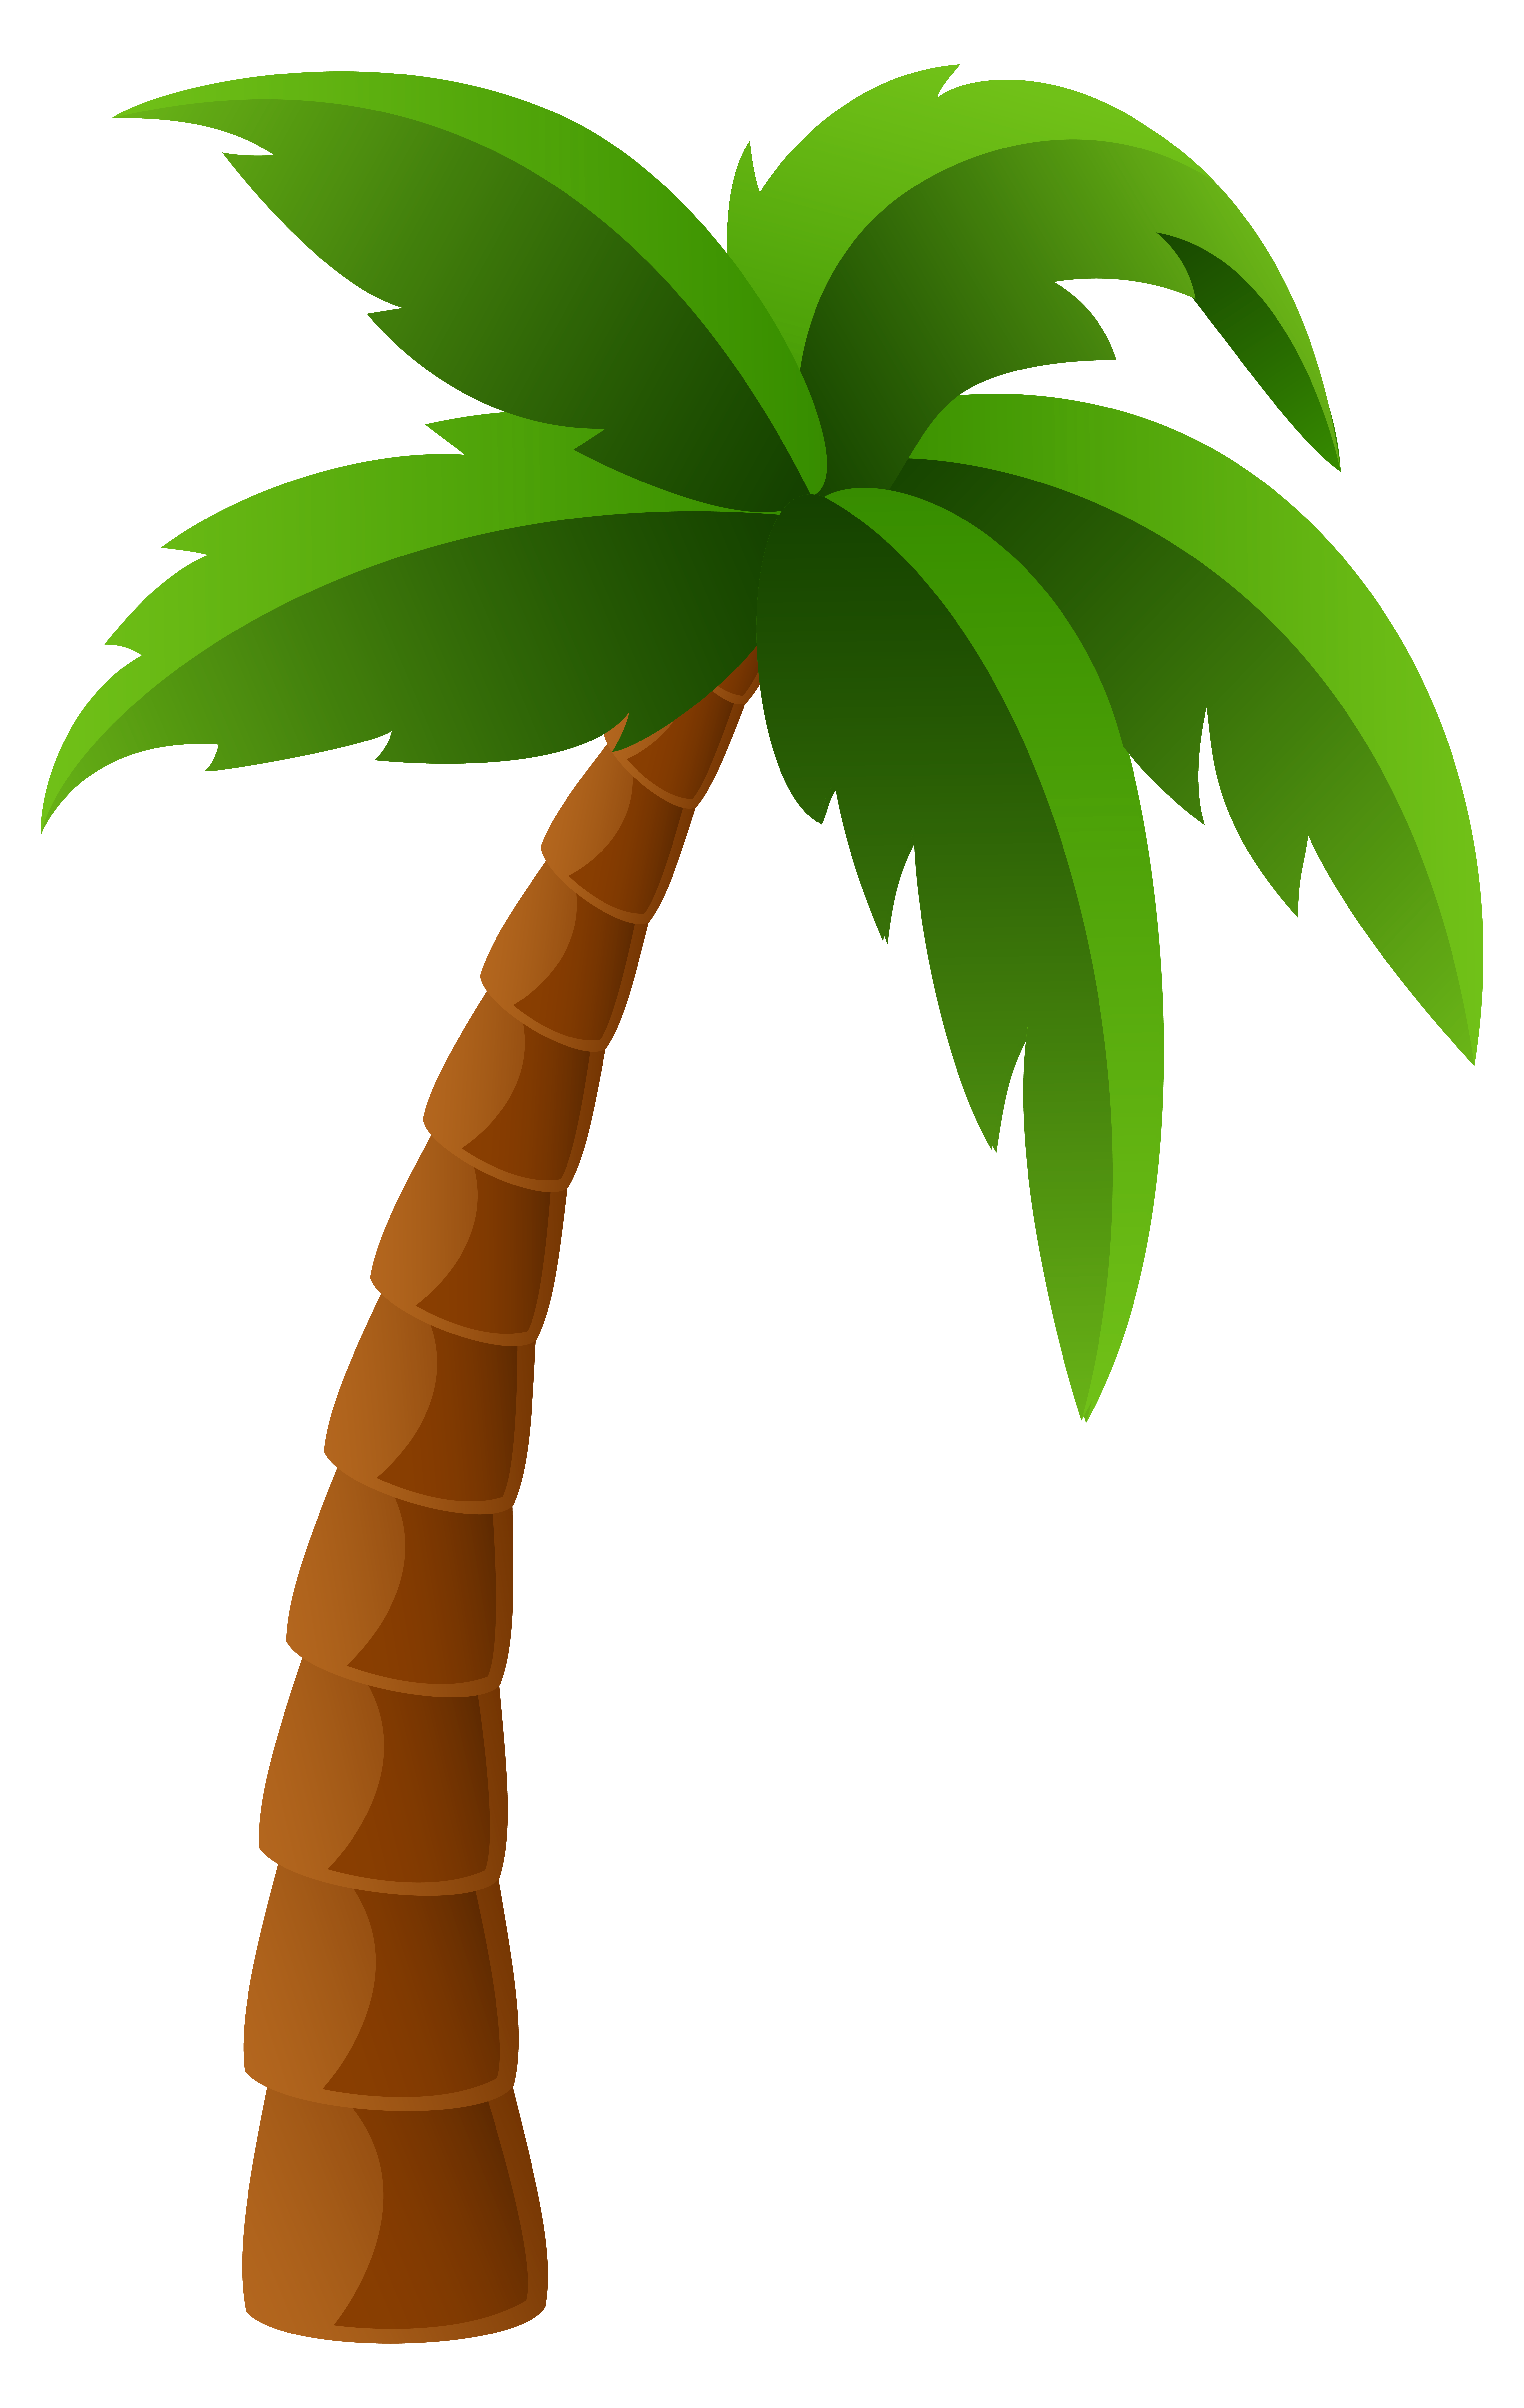 Clipart of a palm tree - ClipartFest-Clipart of a palm tree - ClipartFest-5